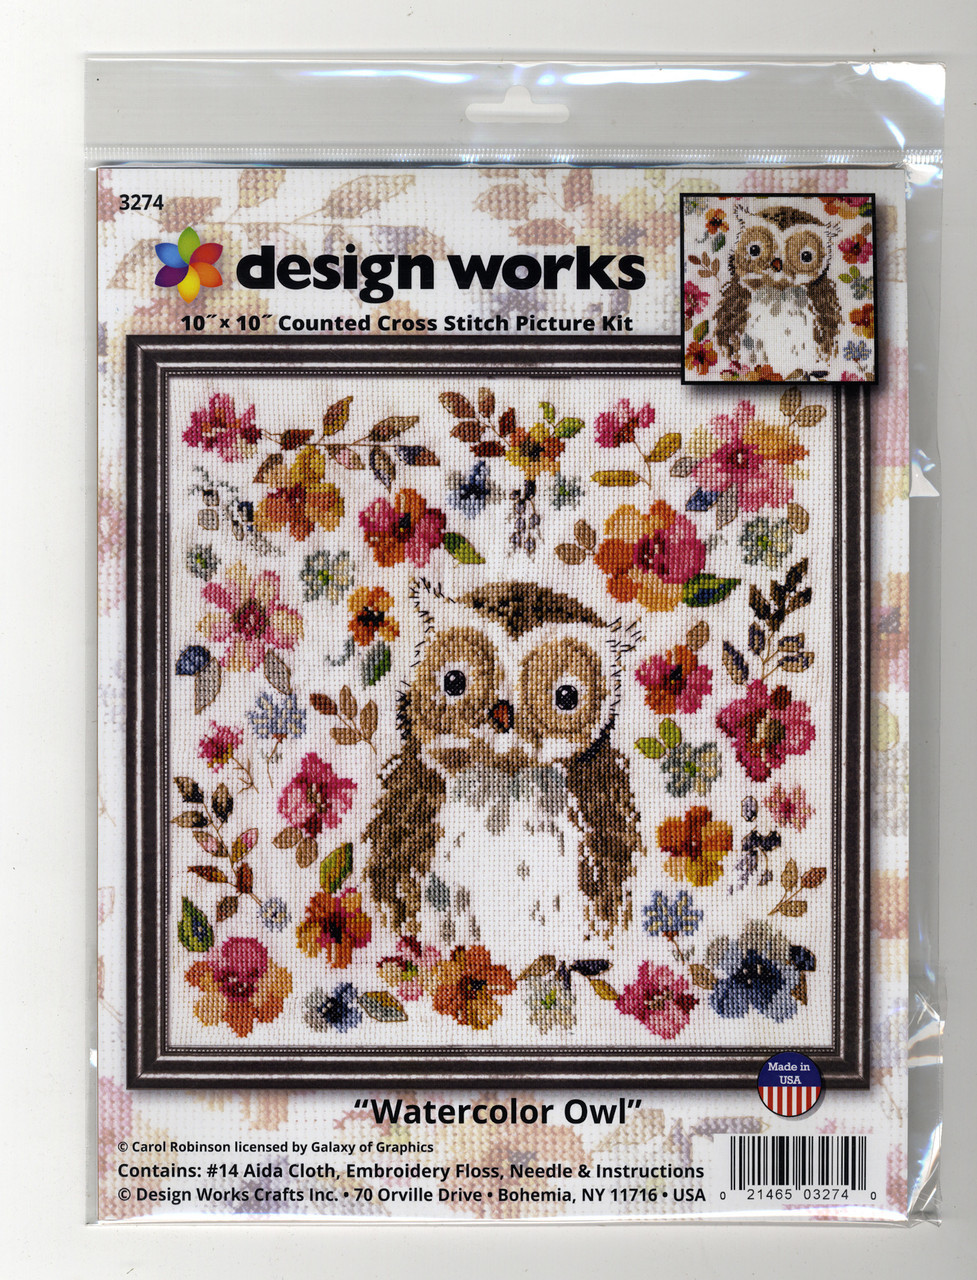 Design Works - Watercolor Owl